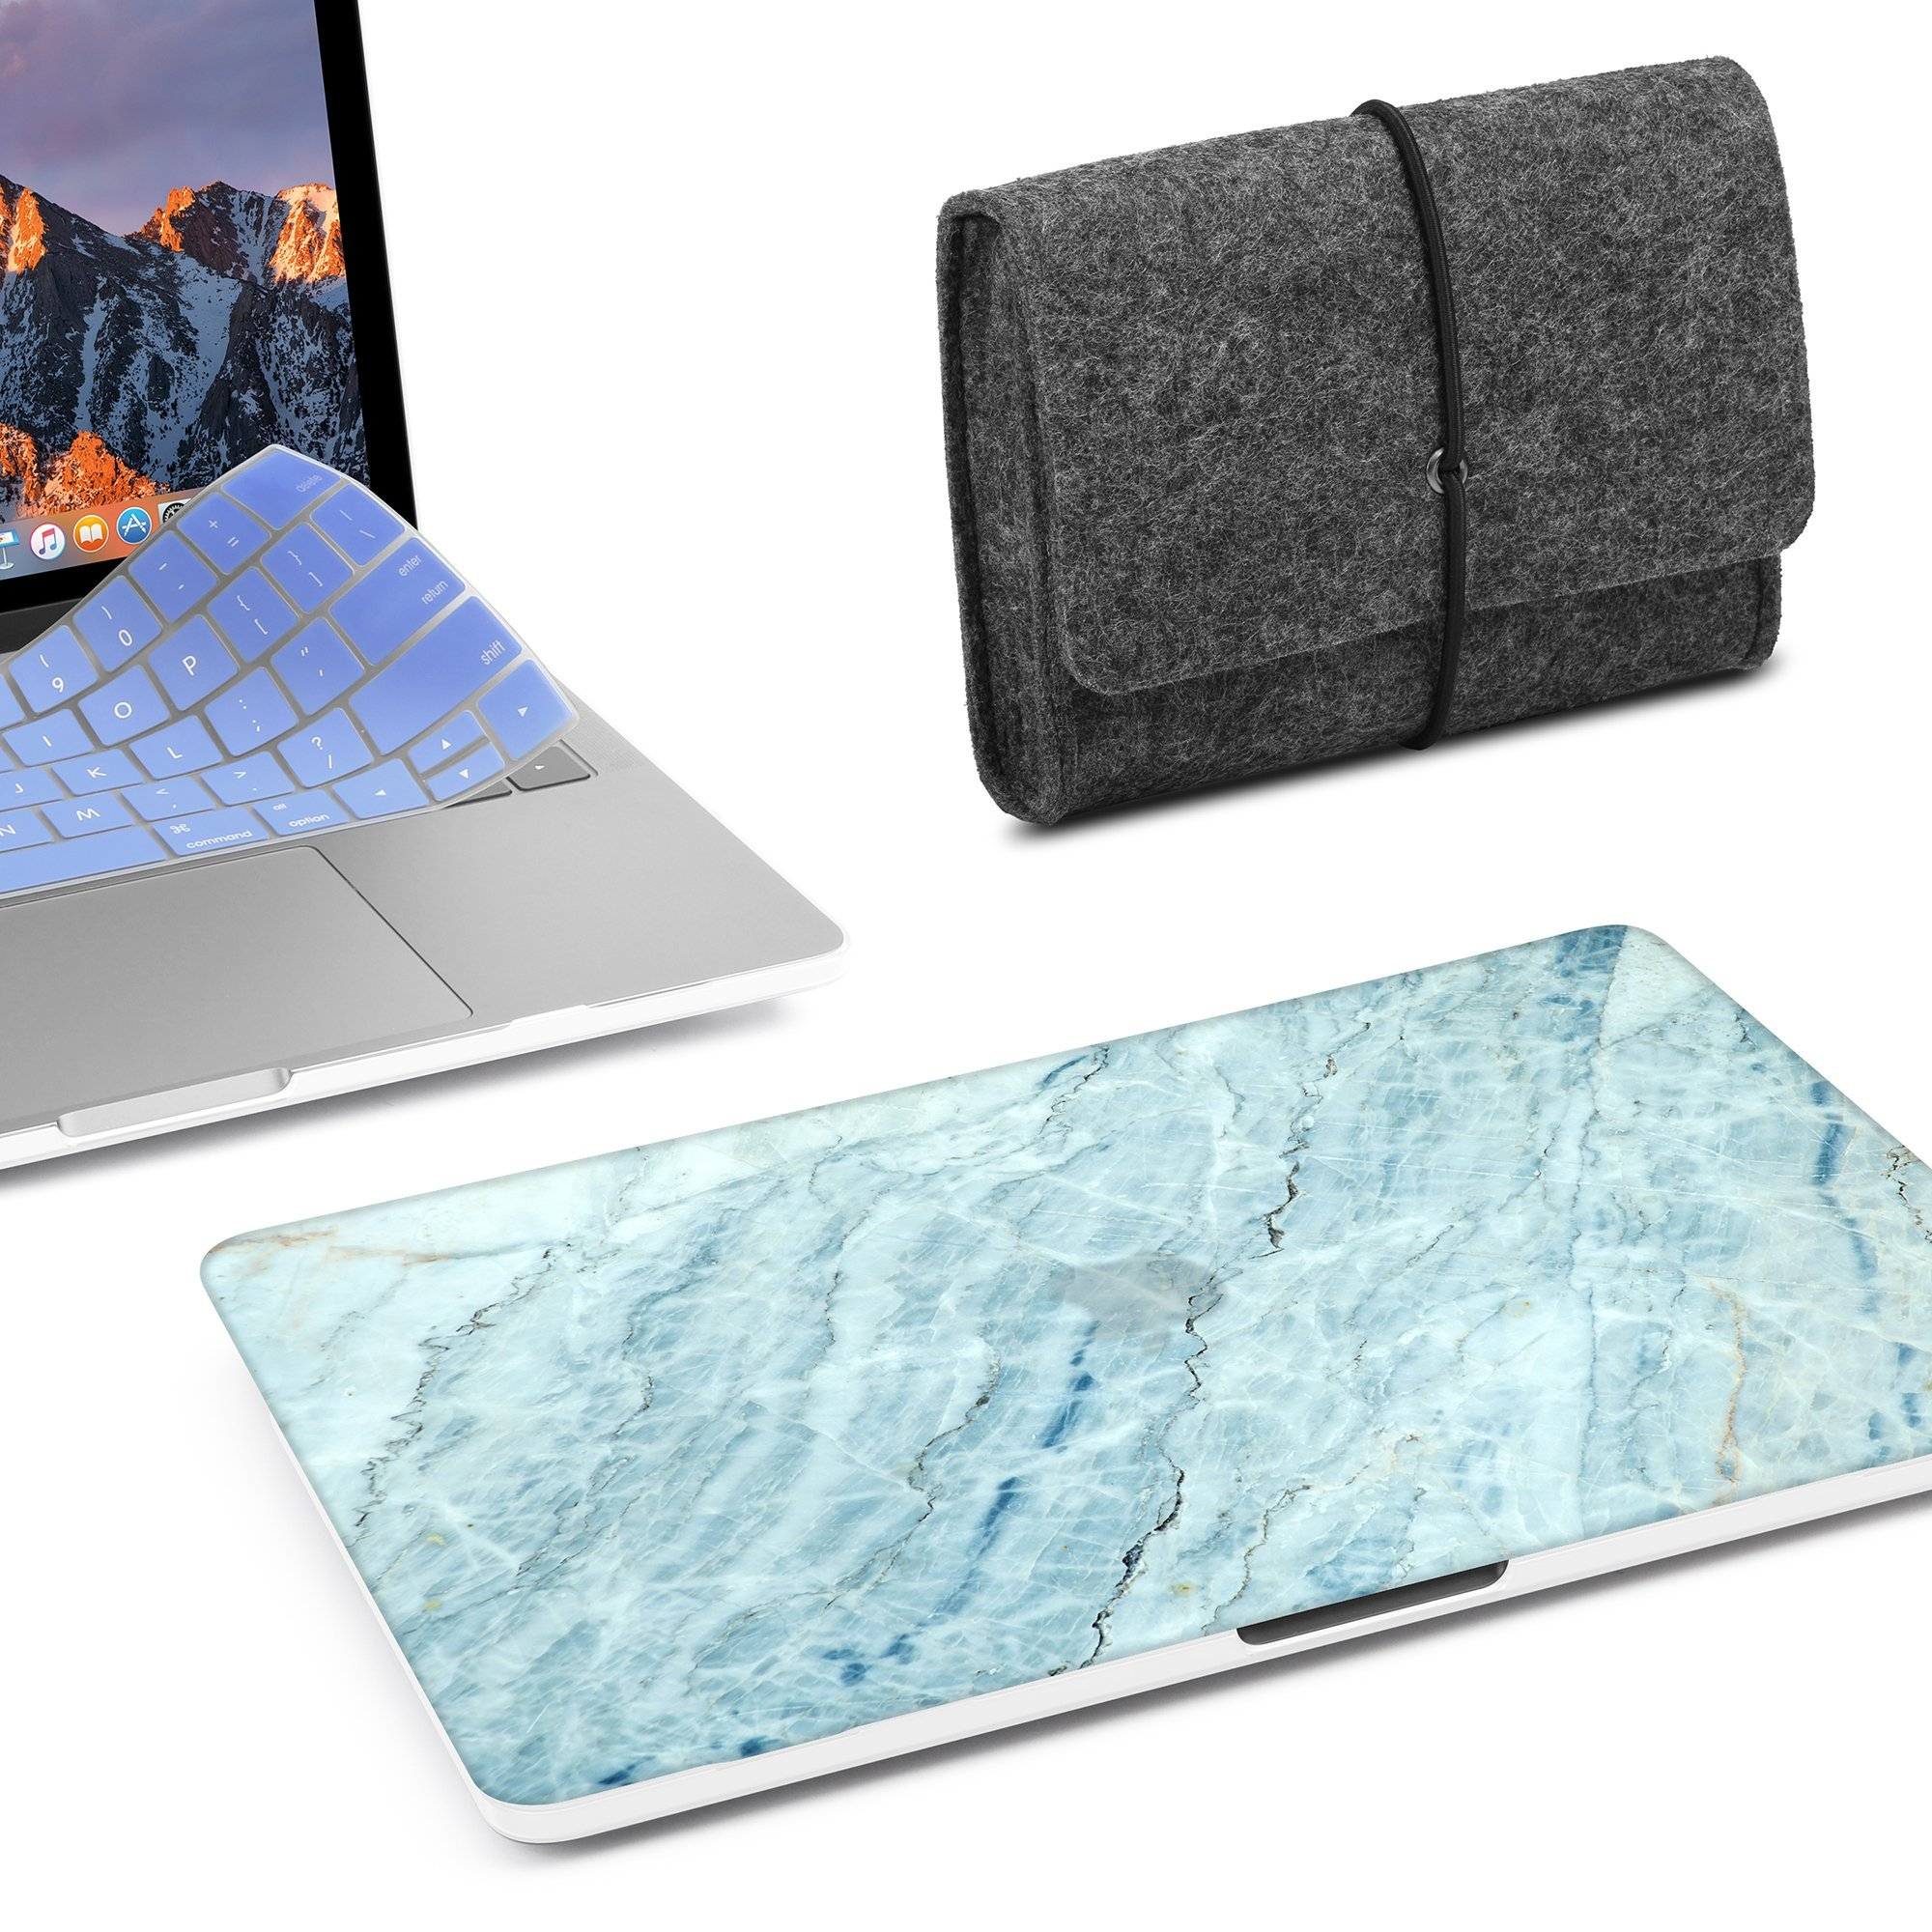 GMYLE MacBook Pro 13 inch Case 2018 2017 2016 Release A1989/A1706/A1708, Plastic Hard Shell, Fabric Storage Bag Travel Pouch, Keyboard Cover Compatible Newest Mac Pro 13 Inch – Blue Ice Marble Stone